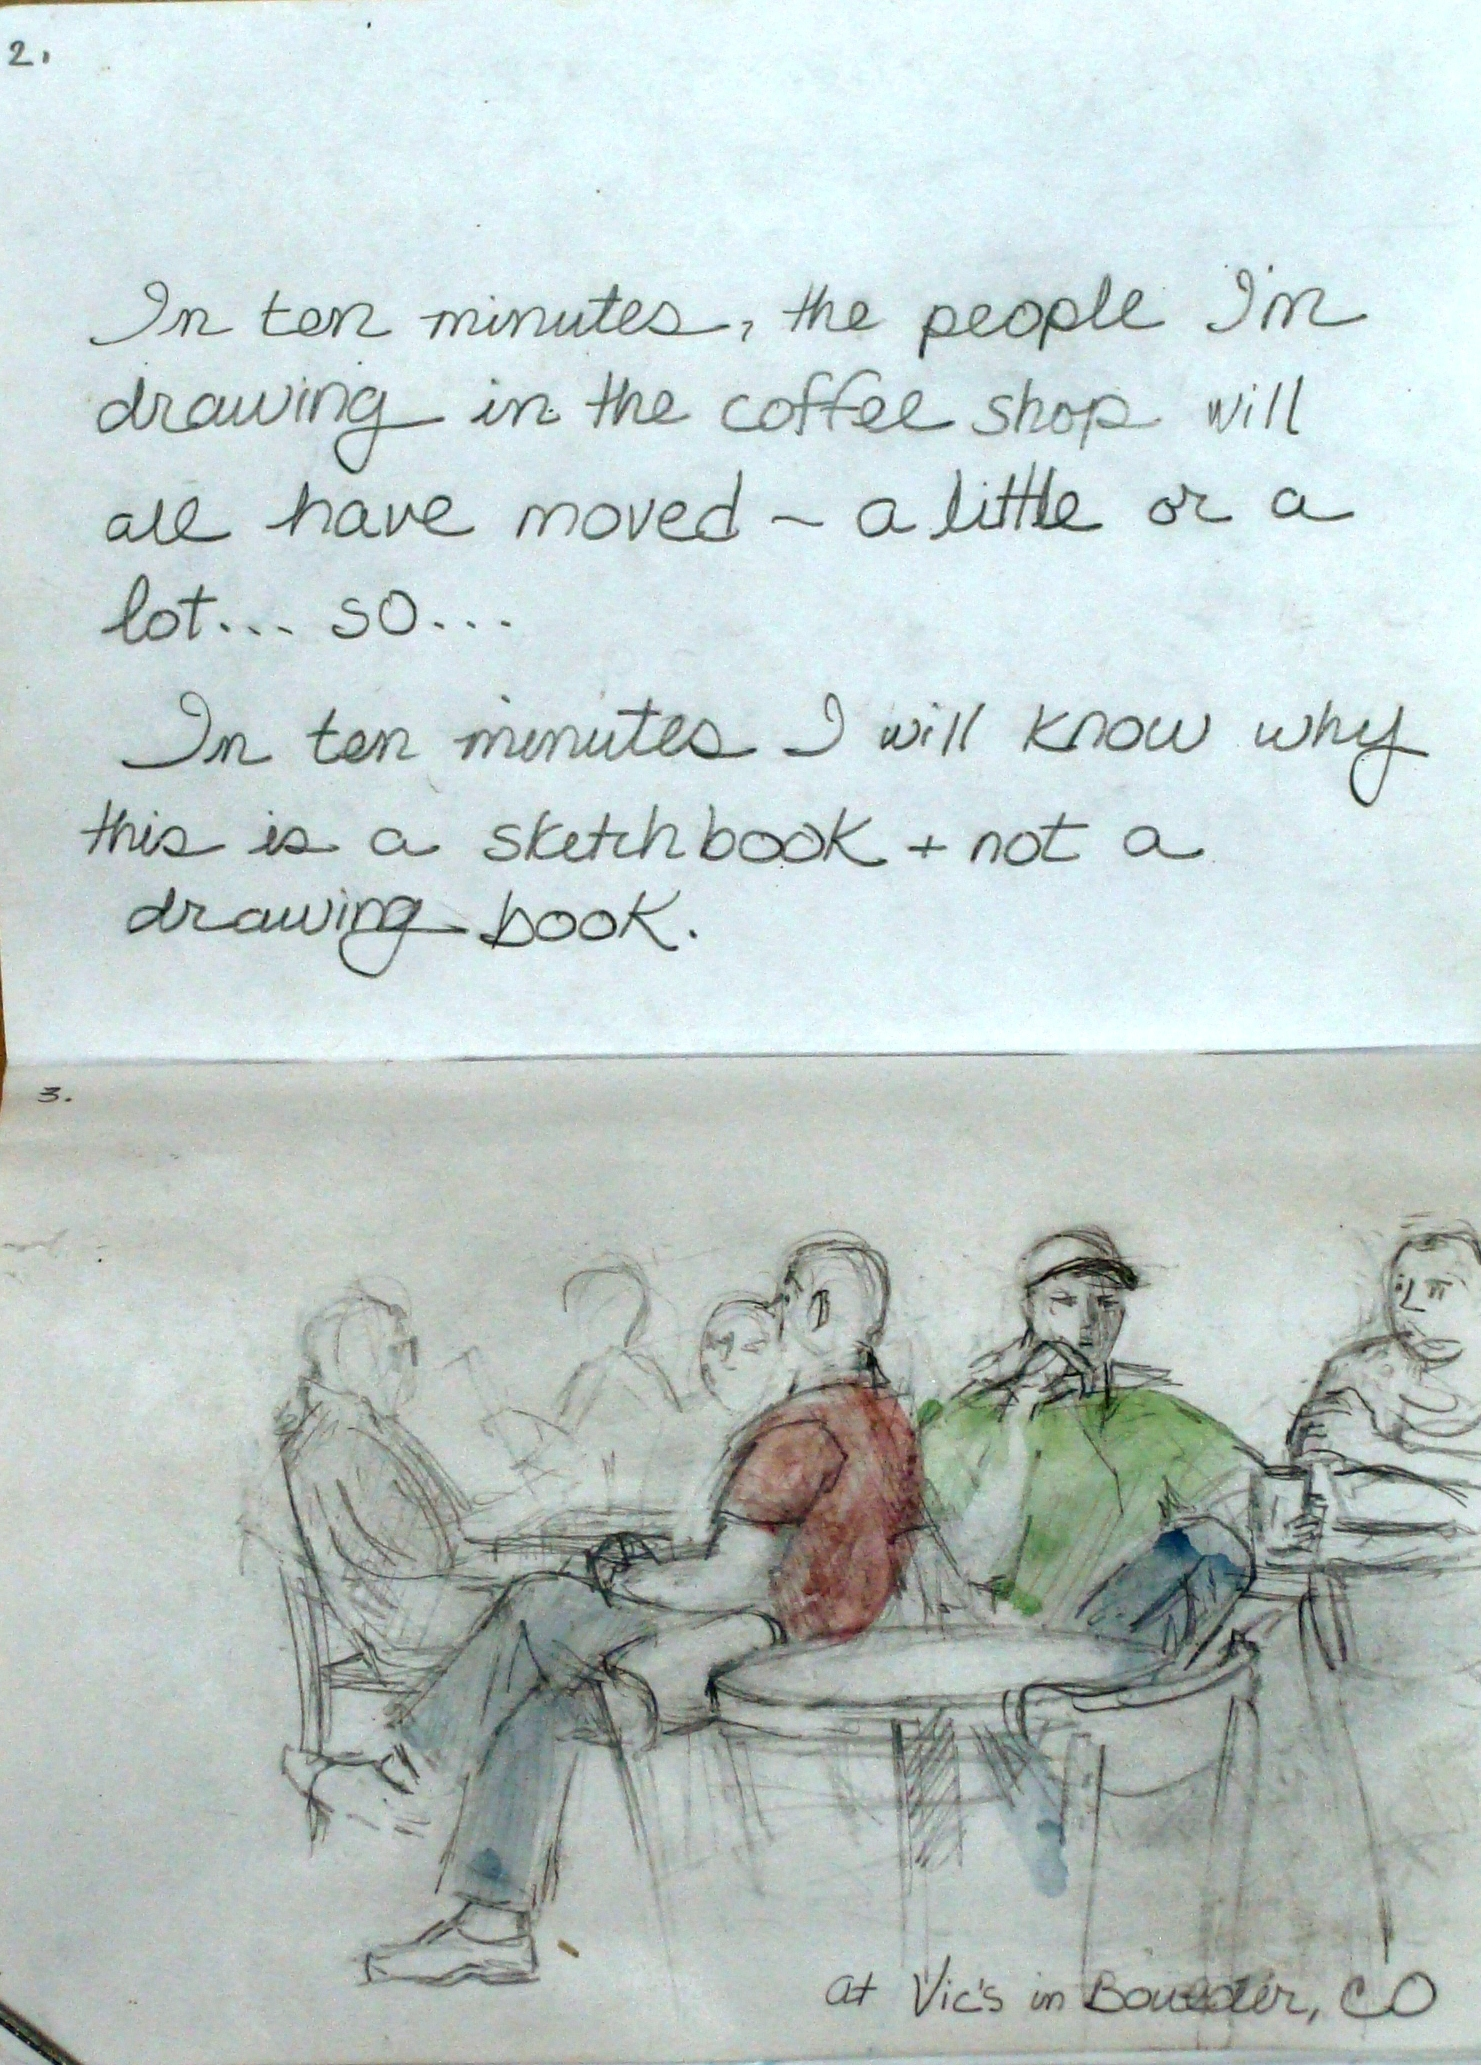 Lillian Kennedy, coffee shop drawing, sketchbook project, in ten minutes